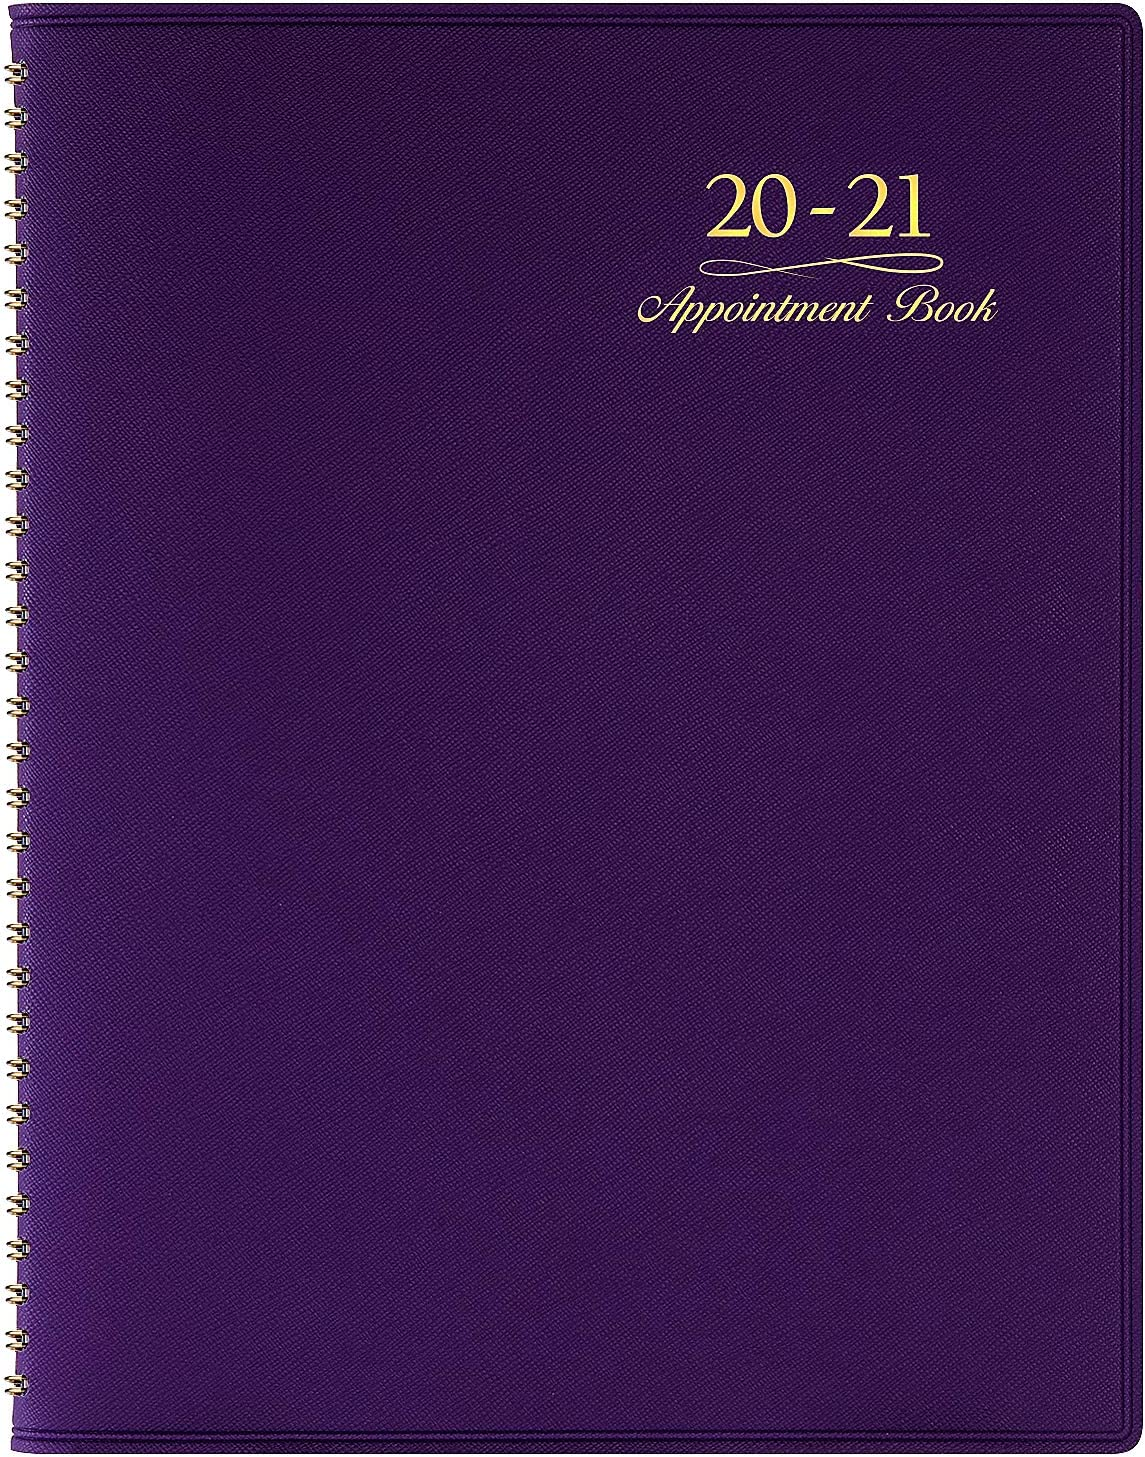 """2020-2021 Weekly Appointment Book & Planner - 2020-2021 Daily Hourly Planner 8.4"""" x 10.6"""", Jul 2020 - Jun 2021, 15-Minute Interval, Flexible Soft Cover, Twin-Wire Binding, Lay - Flat"""